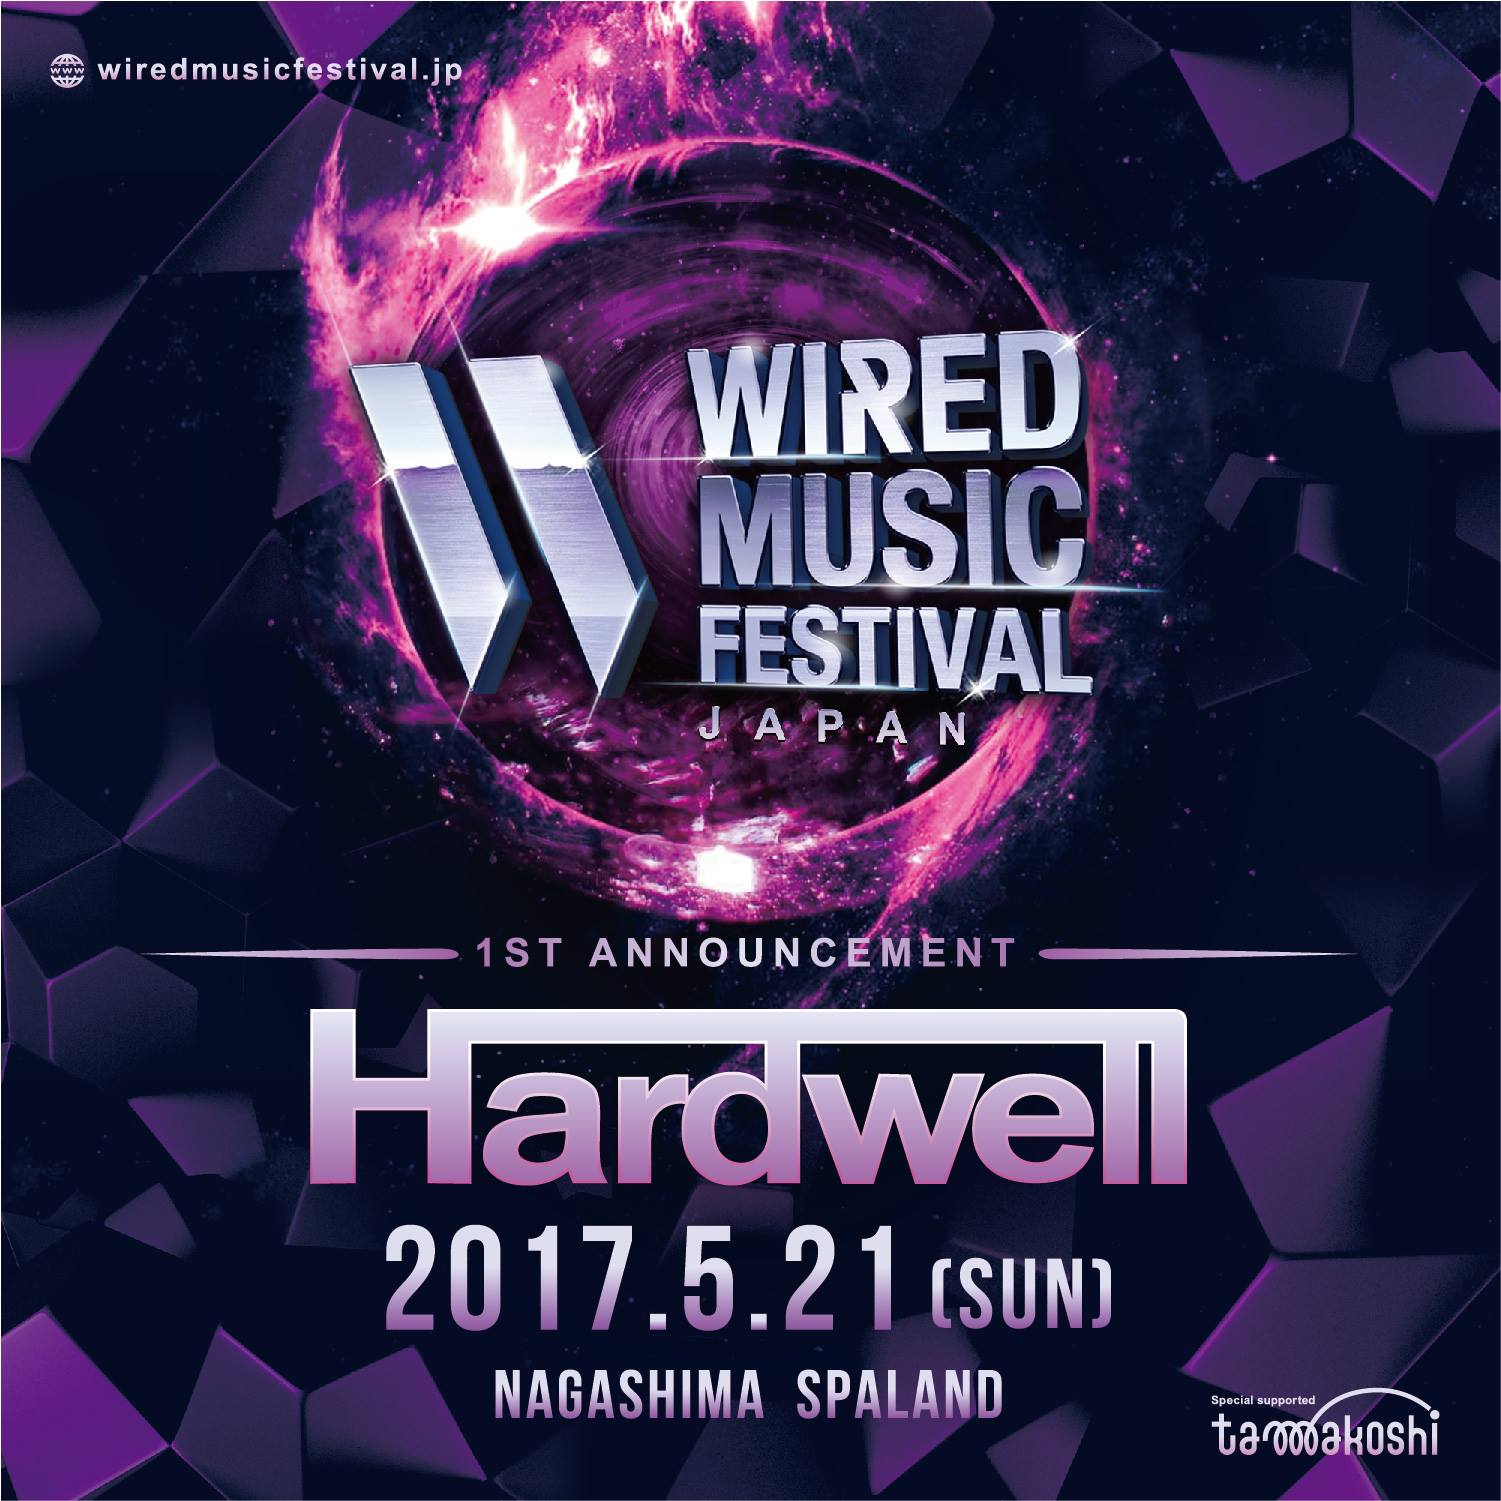 wired-music-festival-2017-hardwell